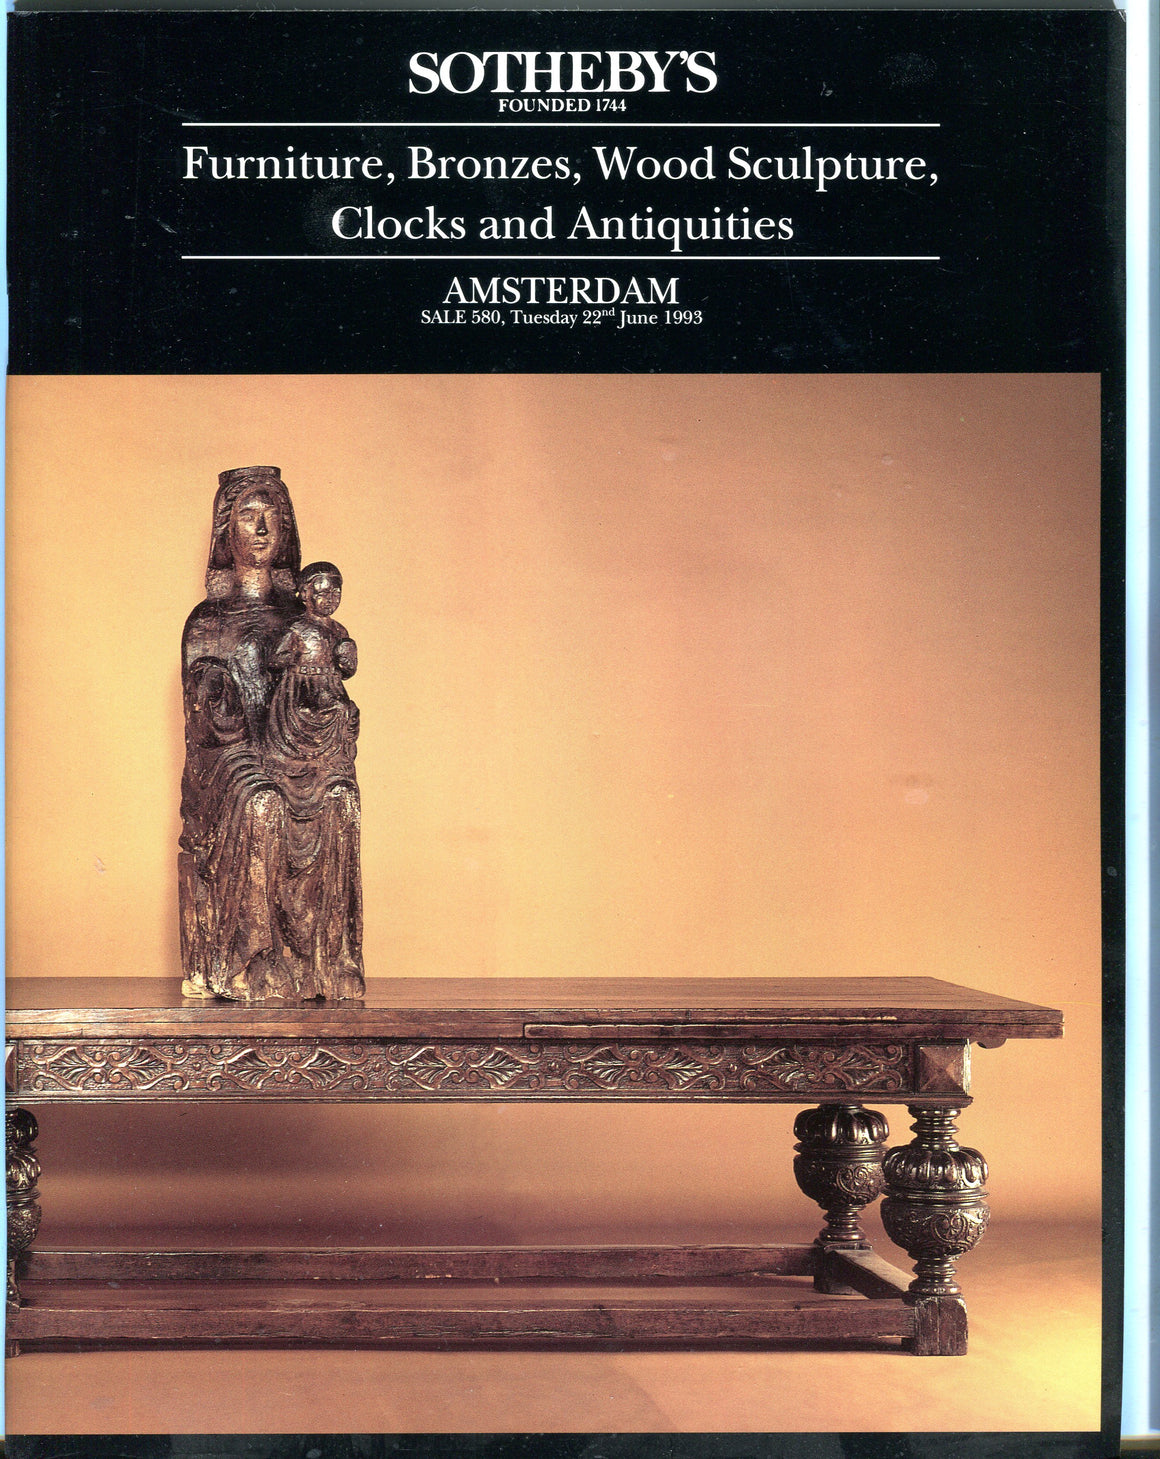 Sothebys Auction Catalog June 1993 Furniture Bronzes Wood Sculpture Clocks